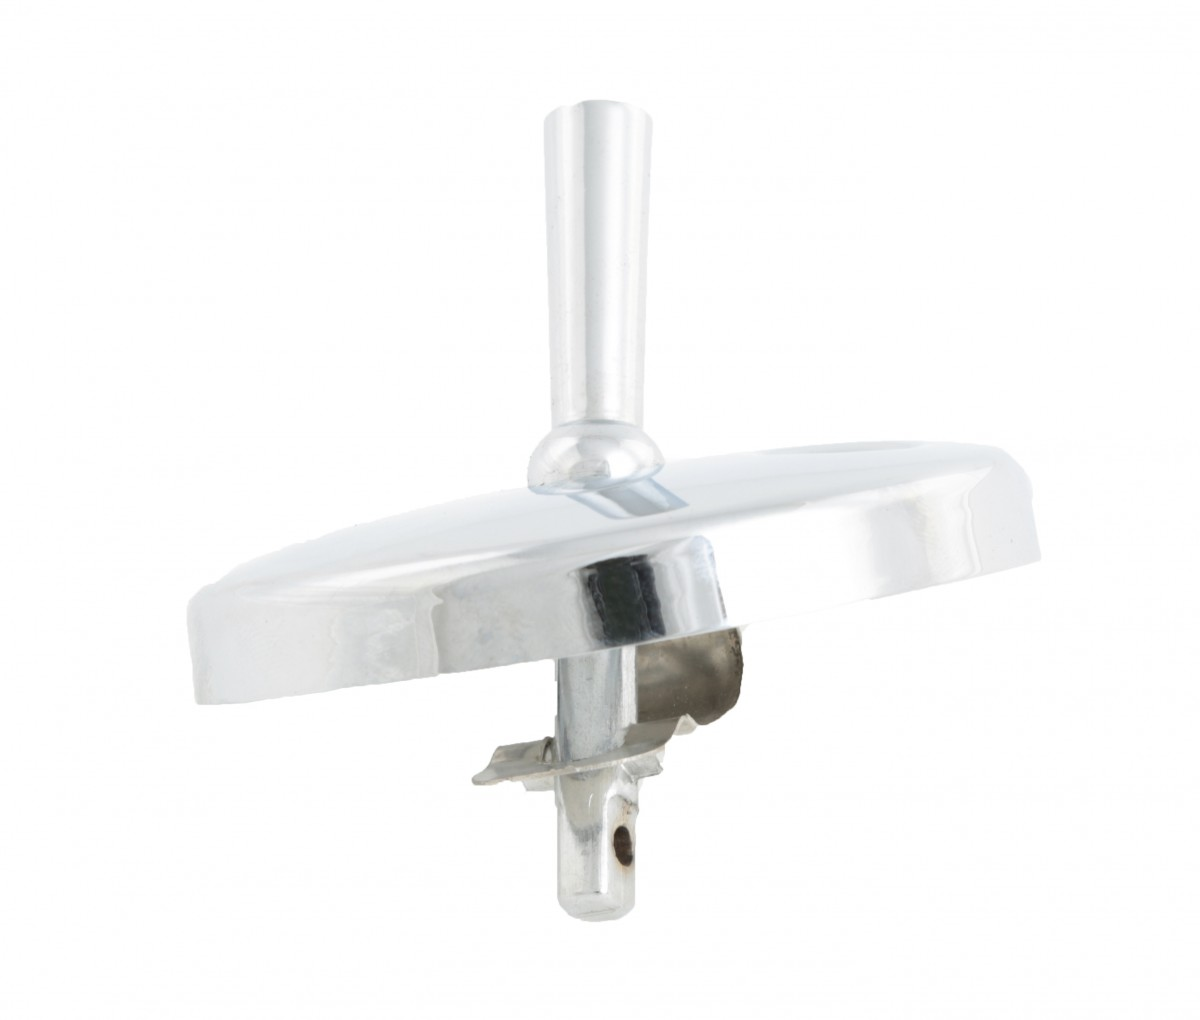 Tub Drain and Trip Lever Overflow Plate Replacement Parts Clawfoot Tub Drain Tub Drain Tub Drains